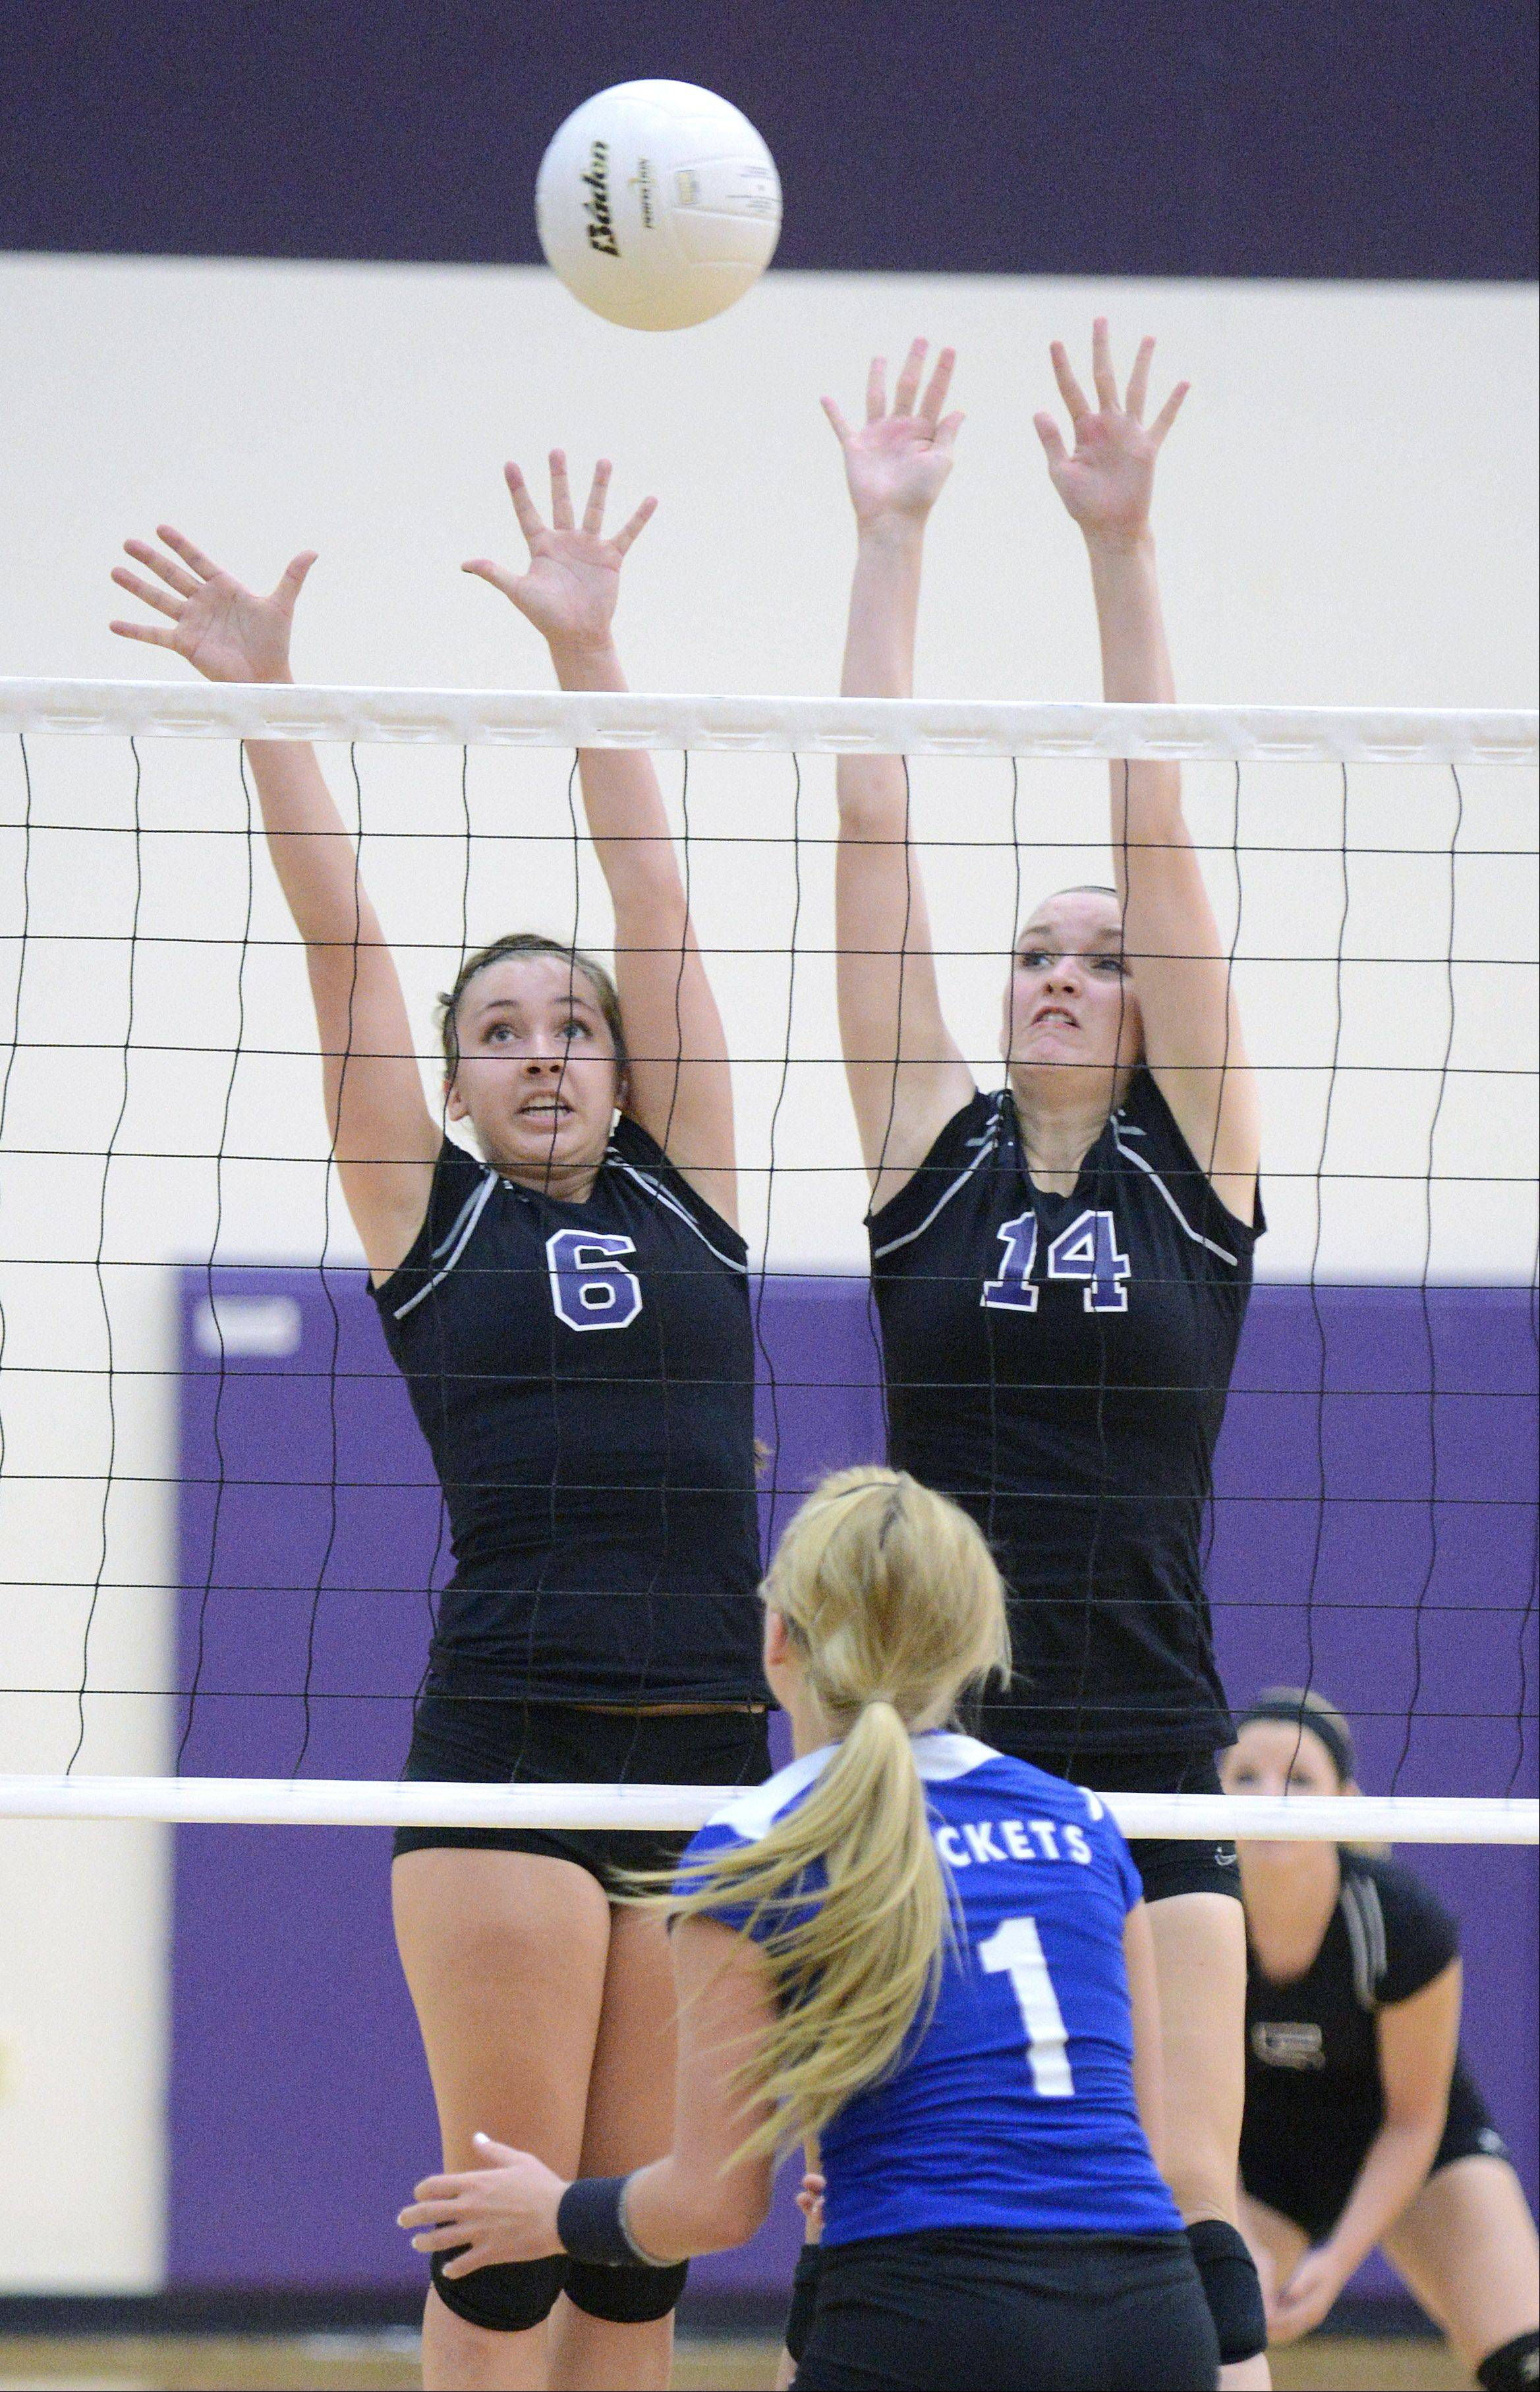 Hampshire's Brittany Laffin, left, and Sophia Robson block a spike by Burlington Central's Allie O'Reilly in game one on Wednesday, August 28.